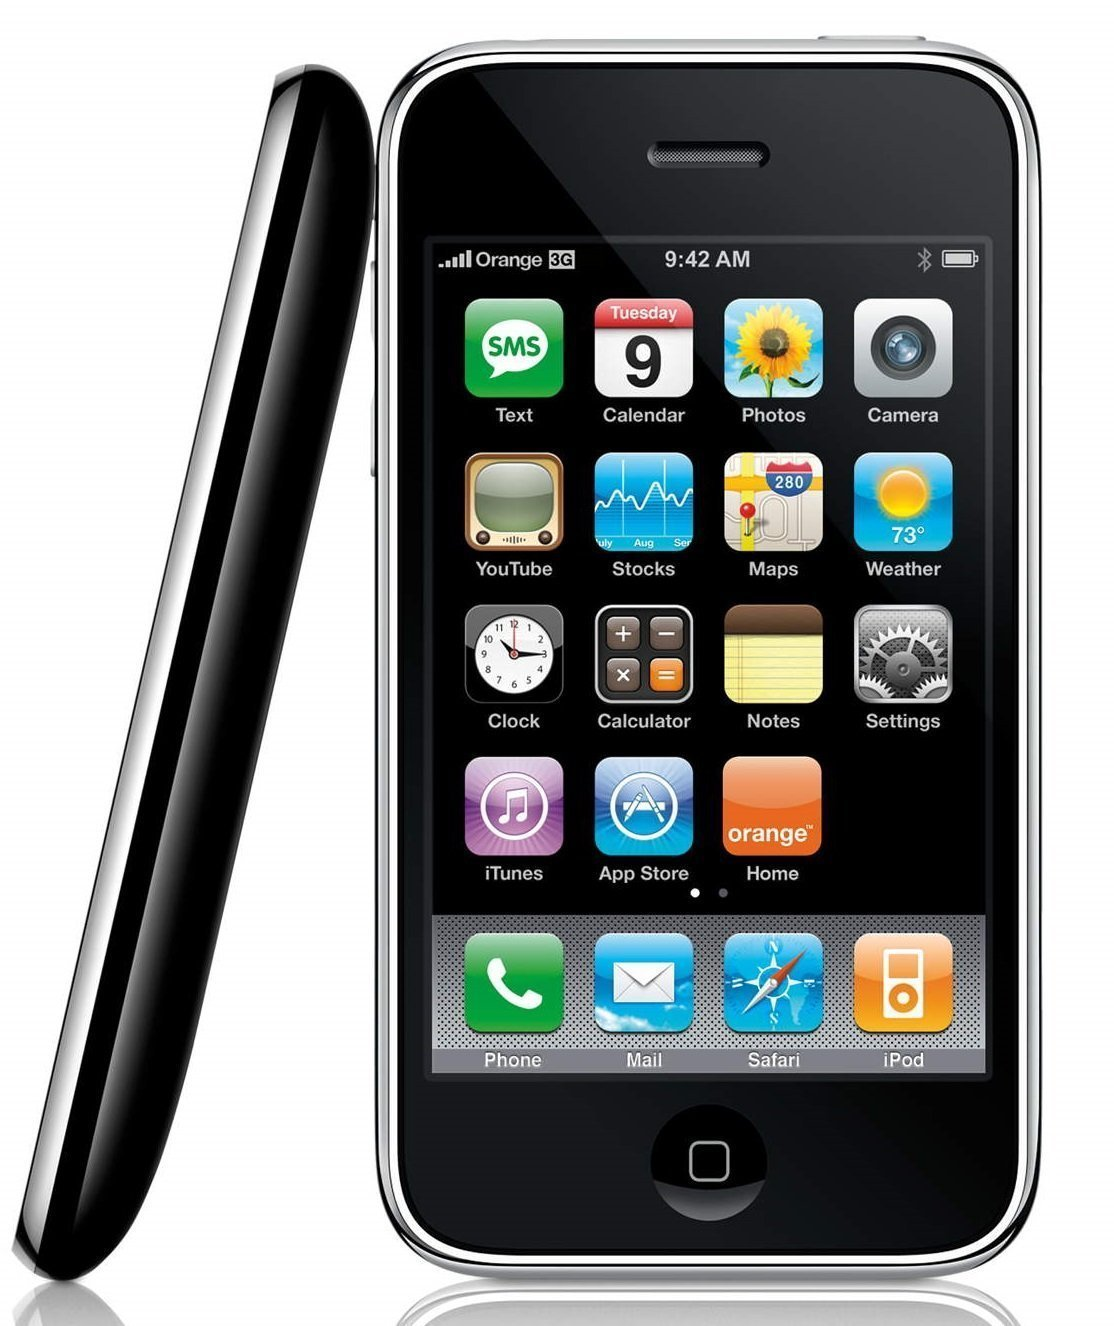 Amazon.com: Apple iPhone 3GS A1303 16GB GSM Unlocked SmartPhone - Black:  Cell Phones & Accessories